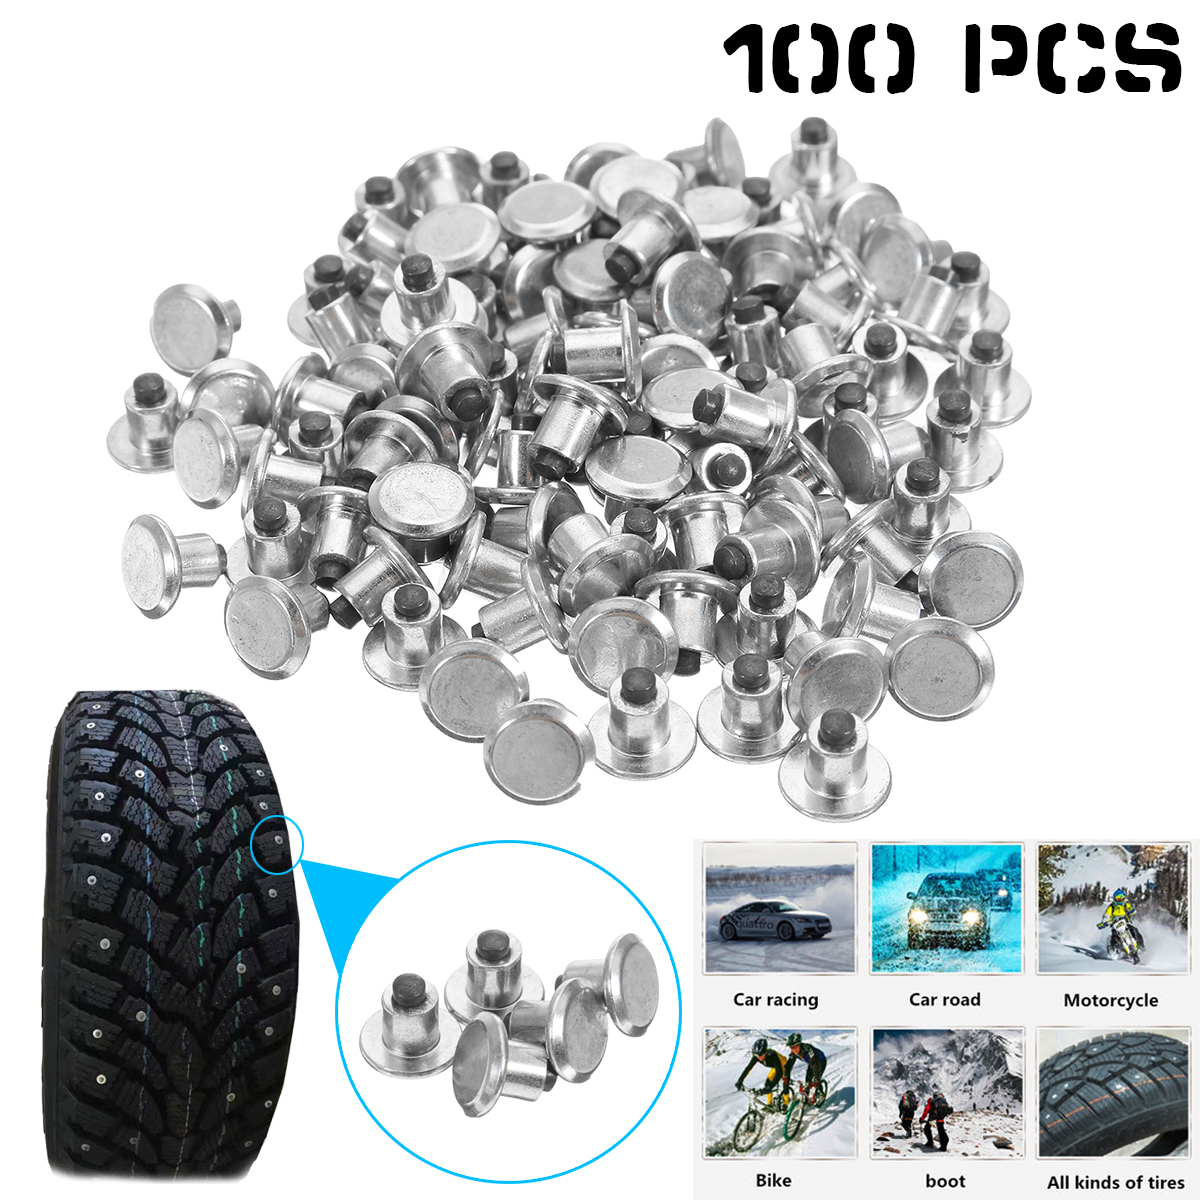 100pcs-universal-spikes-for-tire-car-wheel-tyre-studs-snow-winter-anti-slip-screw-stud-trim-for-auto-suv-atv-truck-motorcycle